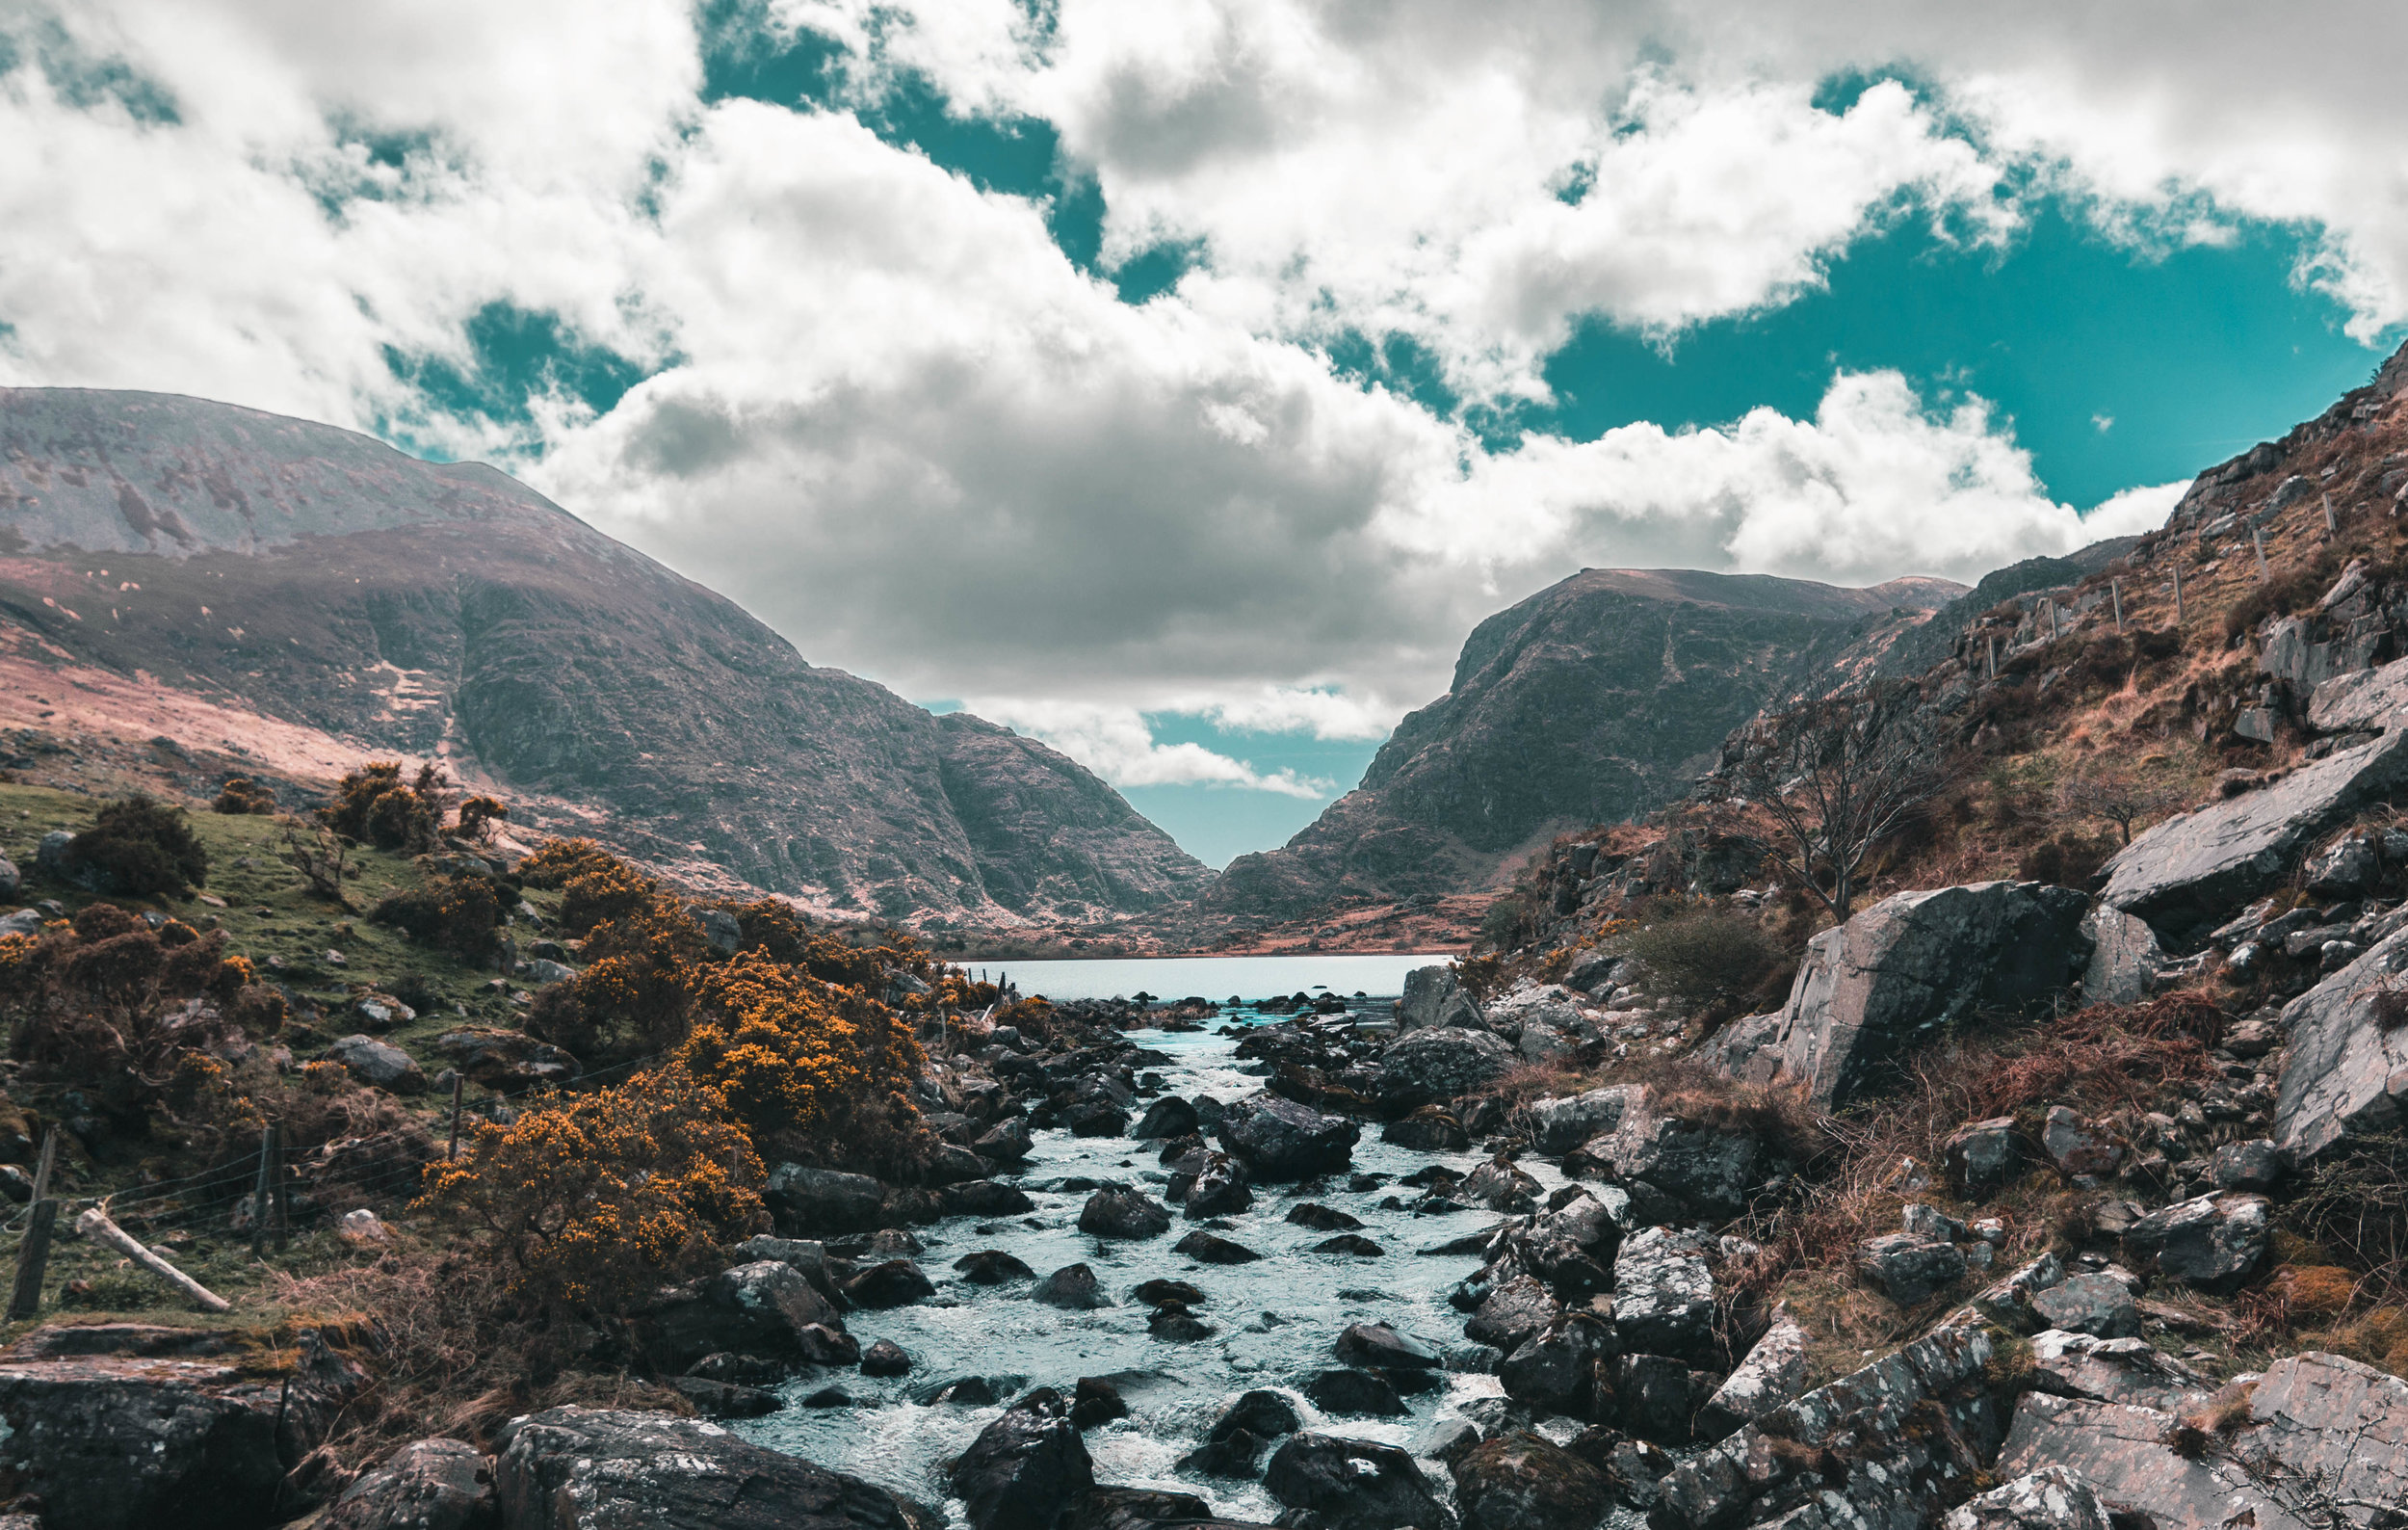 dunloe+gap+killarney+national+park+ireland